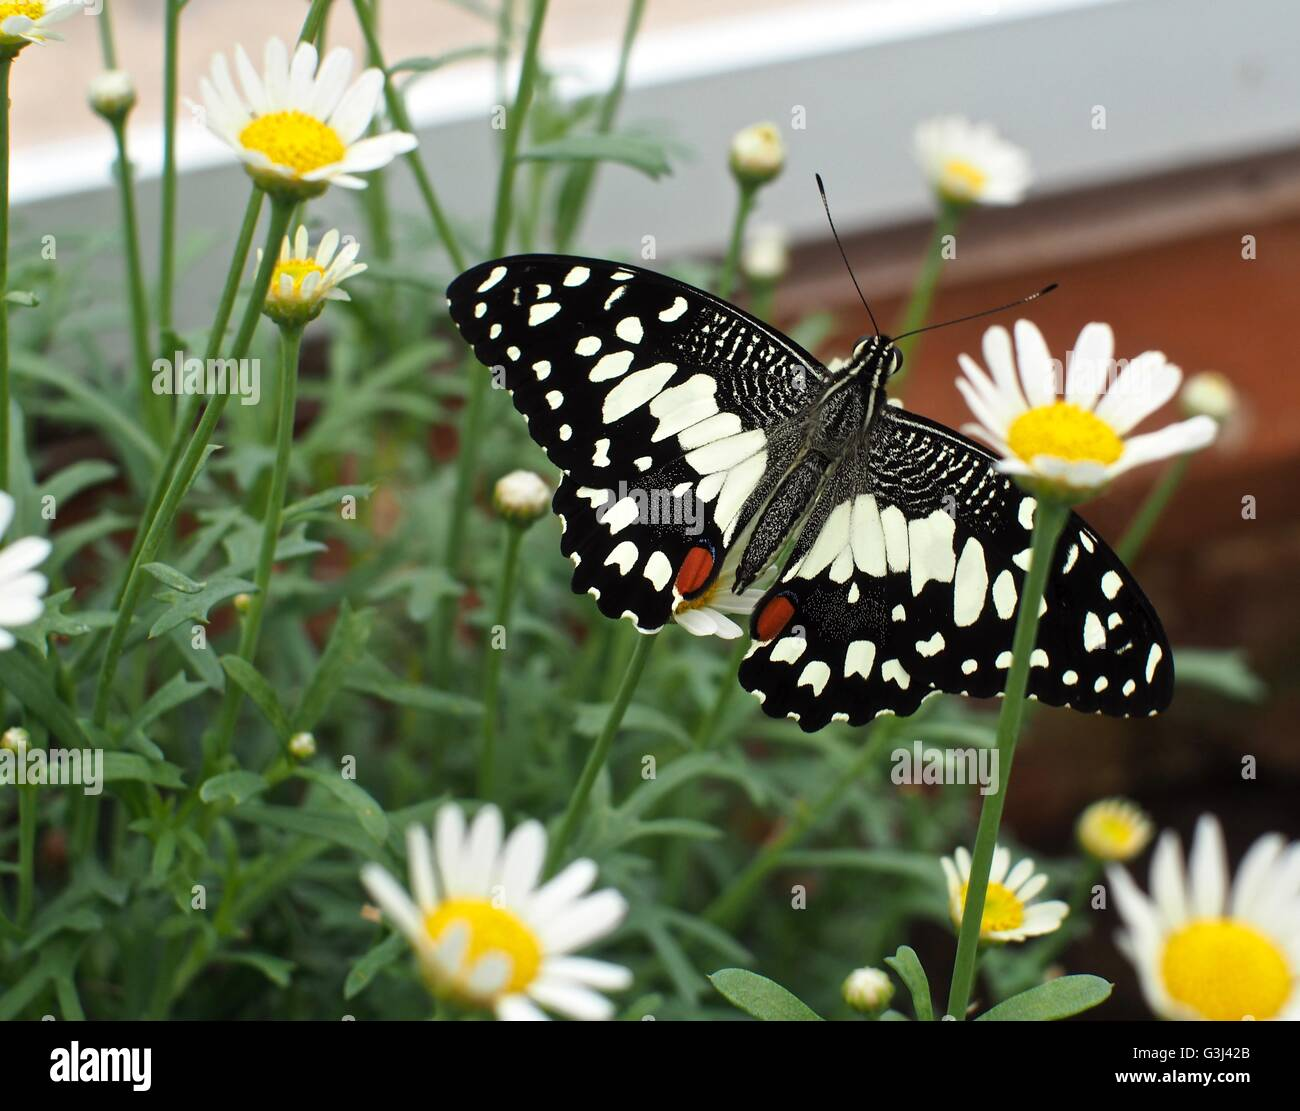 Black butterfly with pale yellow markings in amongst white flowers - Stock Image